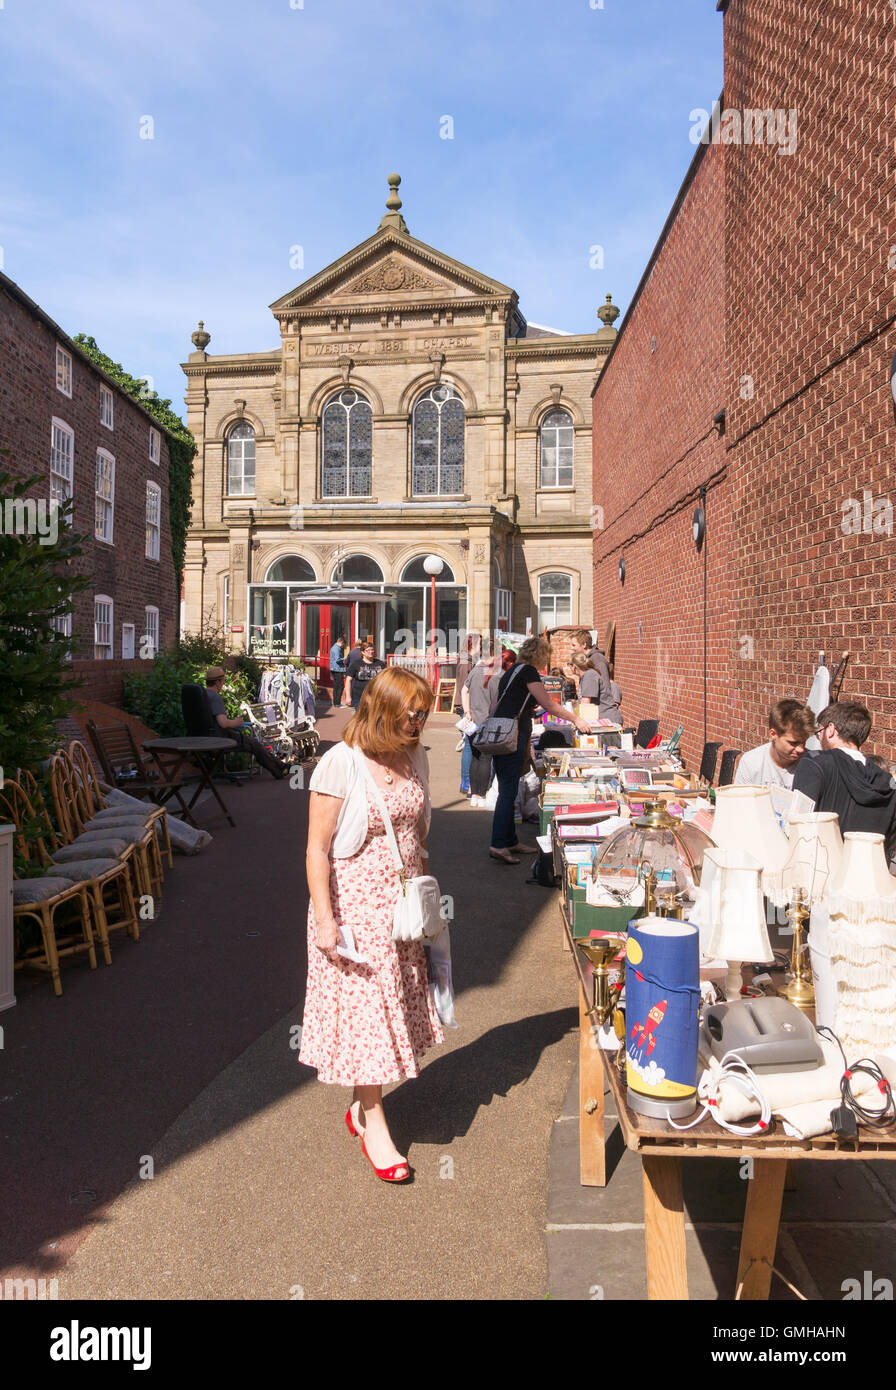 Woman looking at items for sale, jumble sale at the Wesley Chapel, Beverley, East Riding of Yorkshire, England, - Stock Image